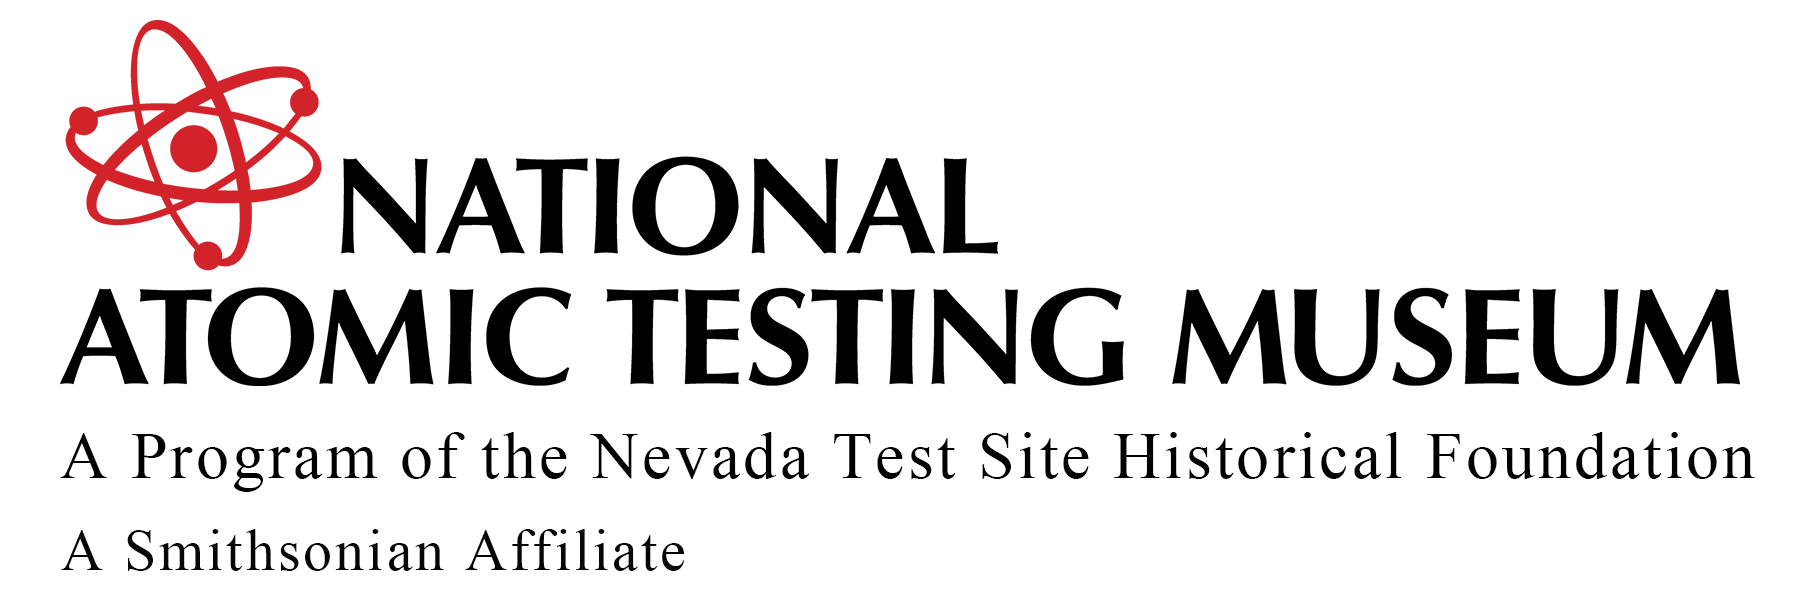 National Atomic Testing Museum